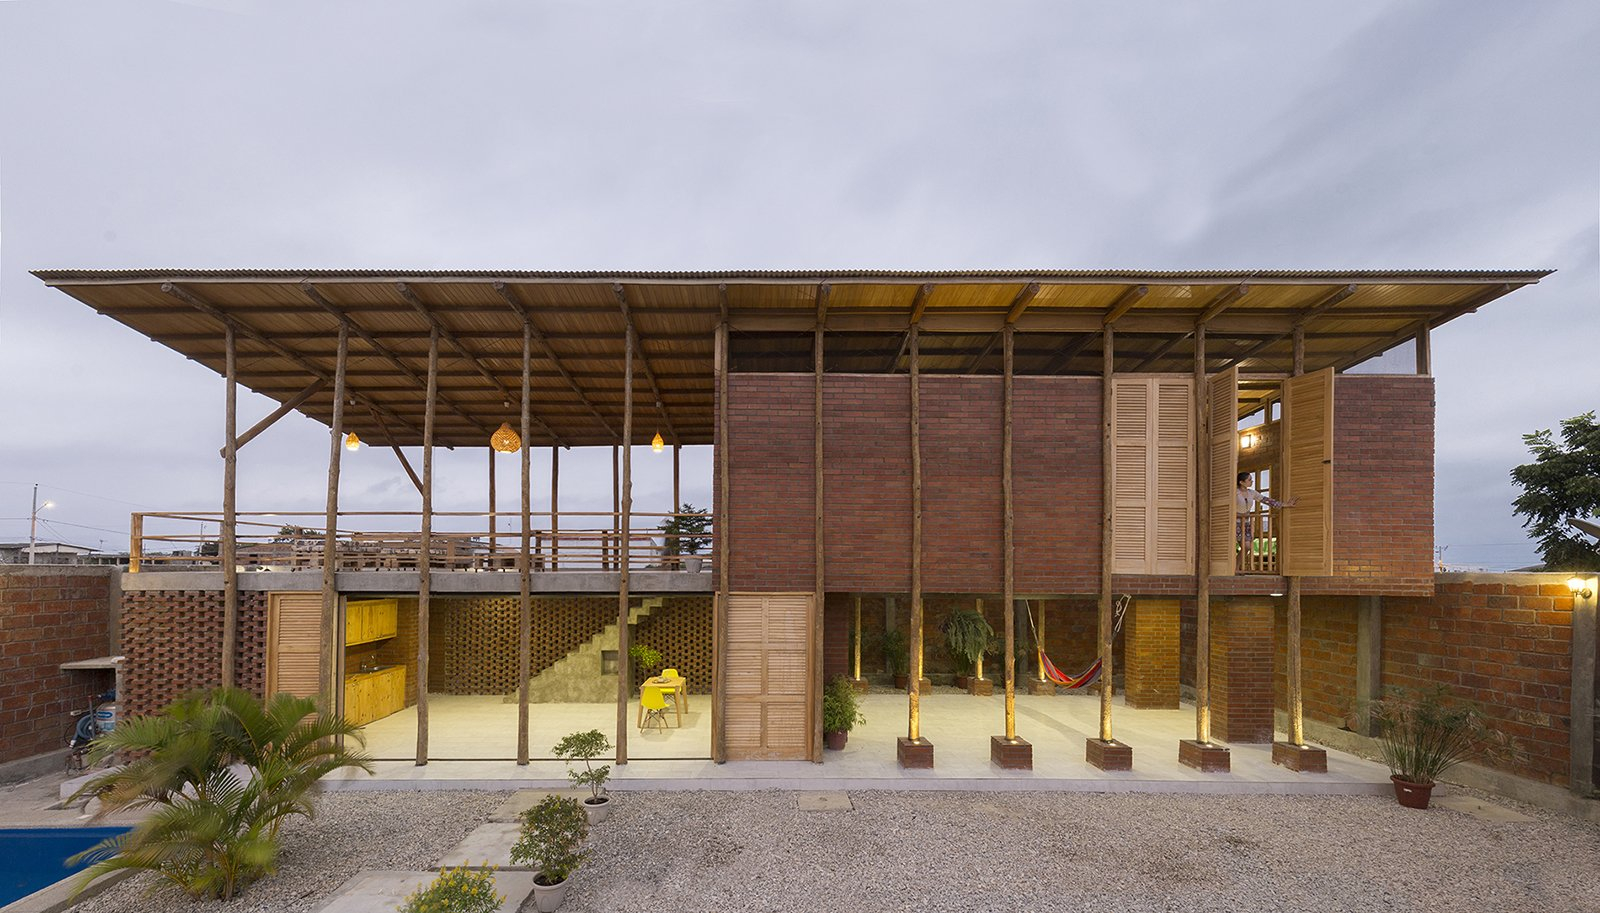 Exterior, Shed RoofLine, Metal Roof Material, House Building Type, Brick Siding Material, Wood Siding Material, and Beach House Building Type  Photo 1 of 16 in Beach Breezes Blow Right Through This Ecuadorian House on Stilts